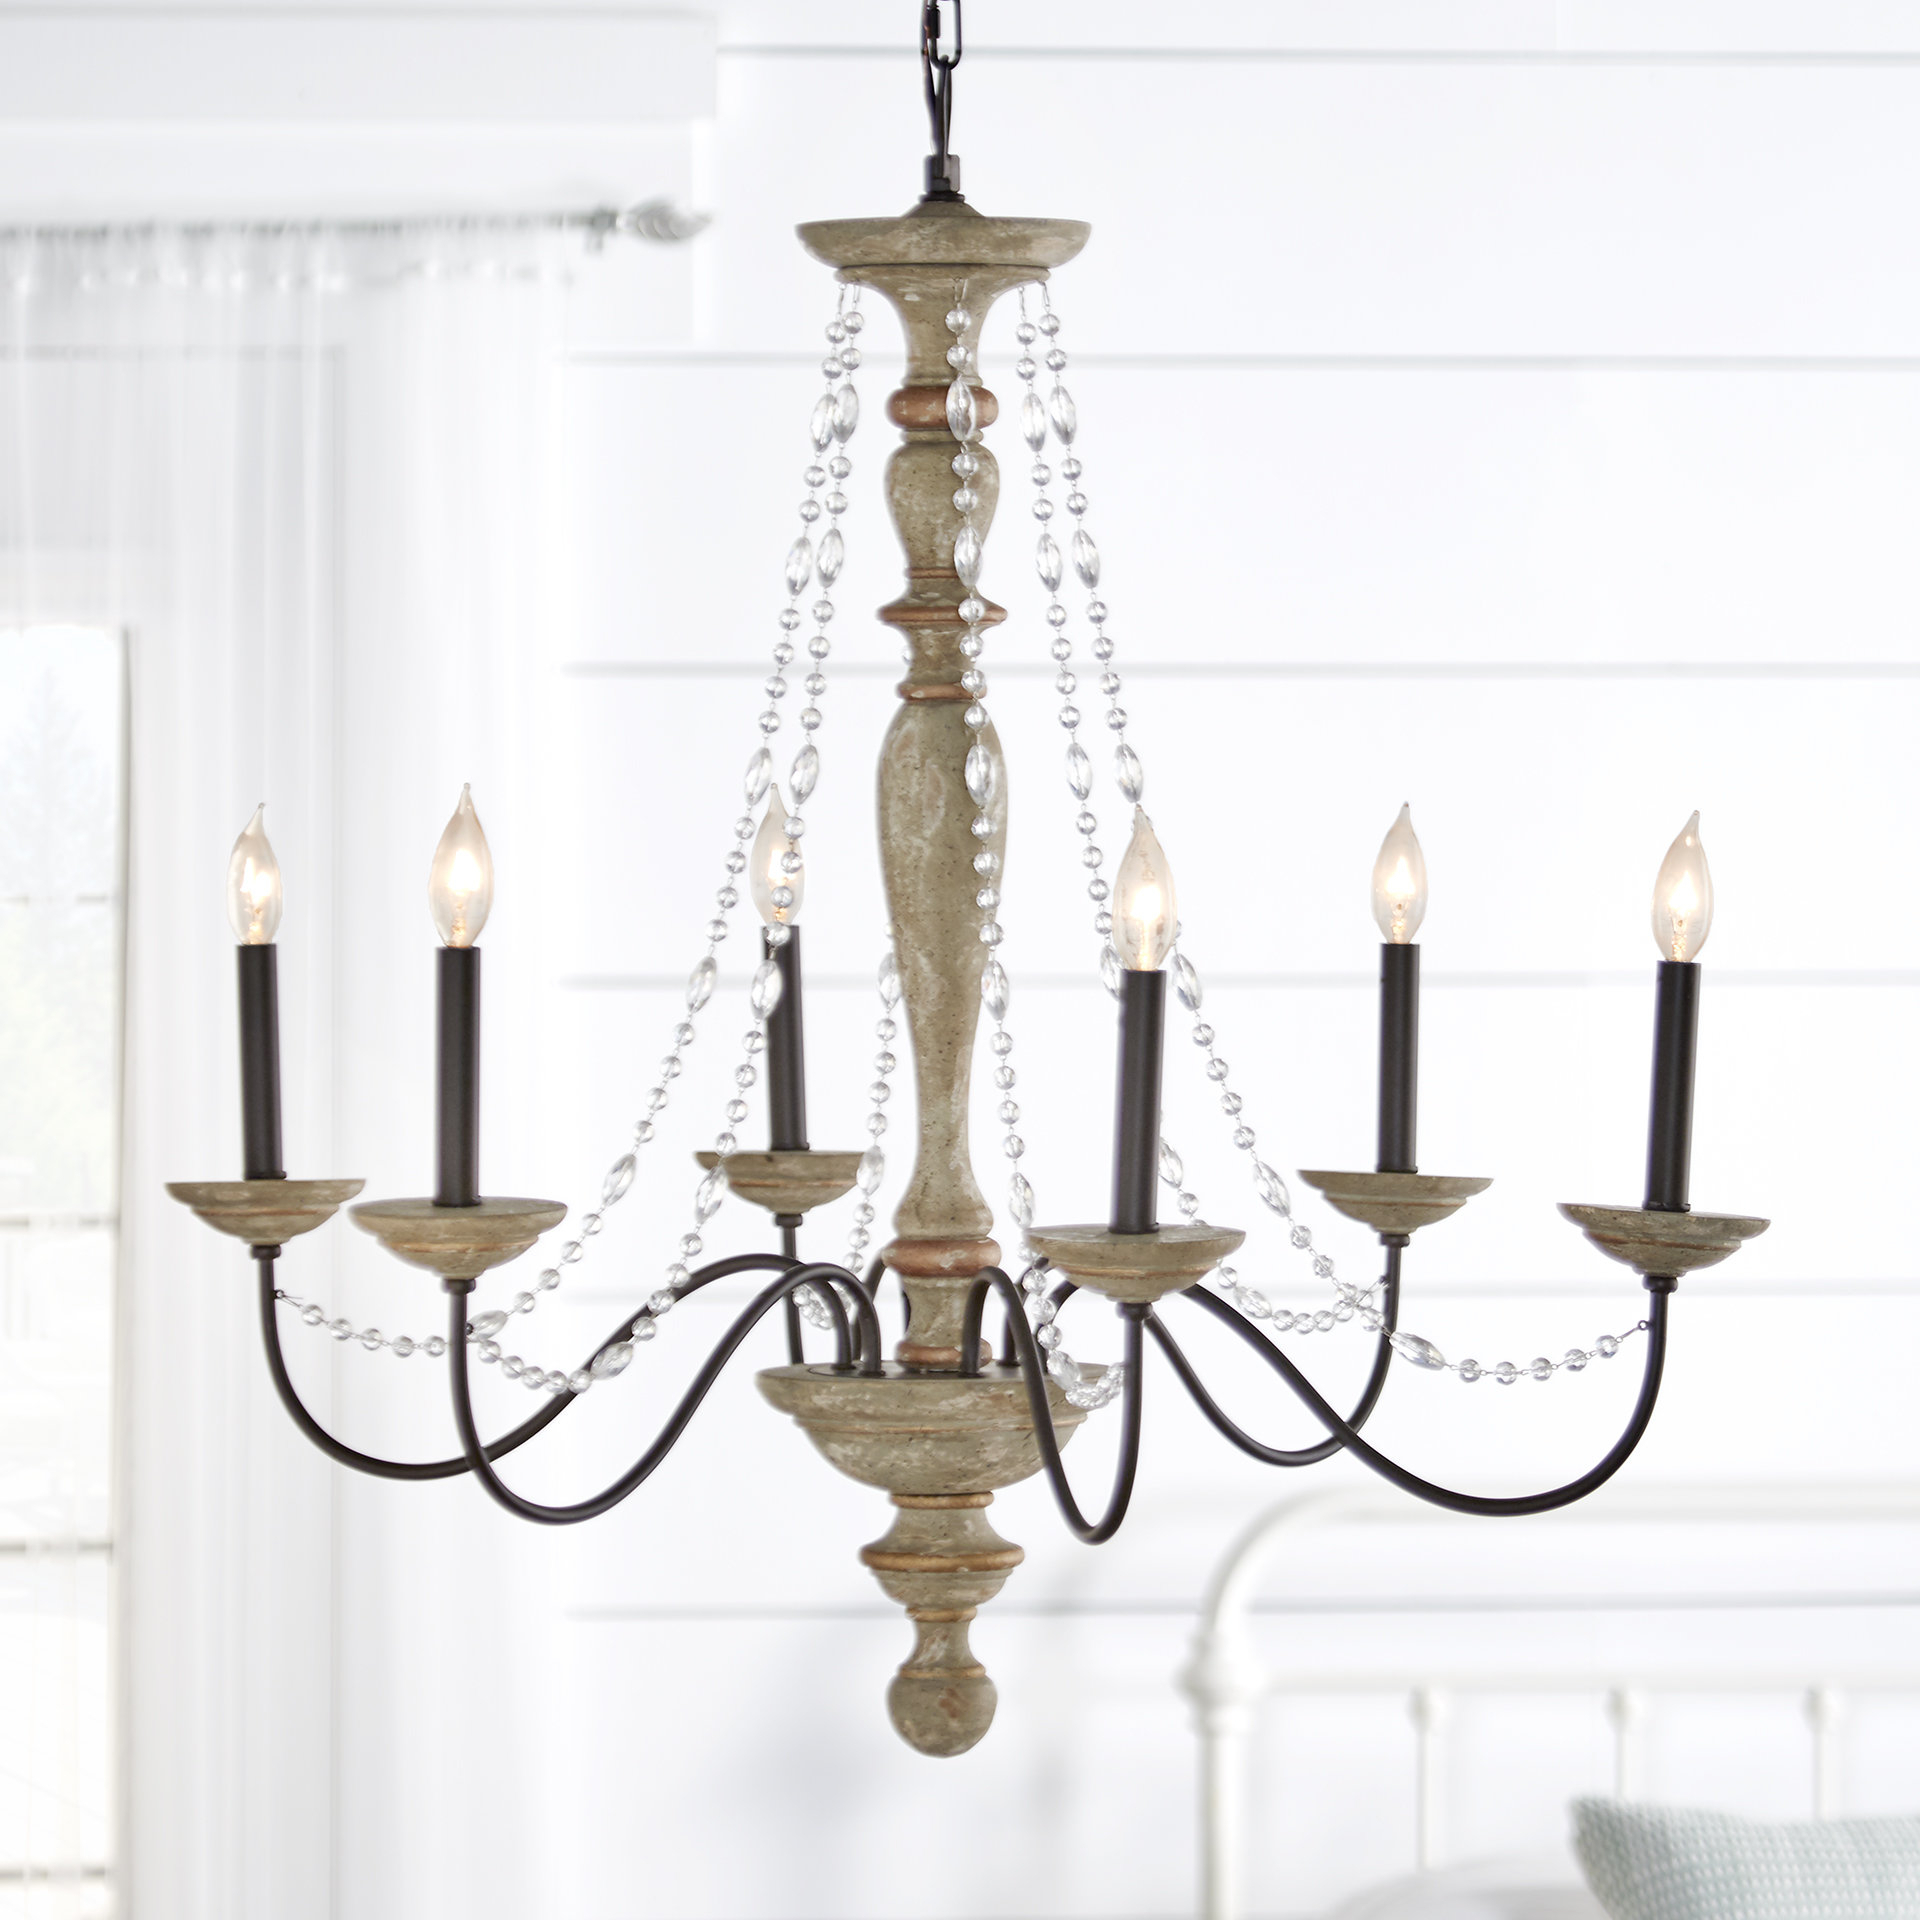 Widely Used Bennington 6 Light Candle Style Chandeliers Regarding Three Posts Brennon 6 Light Candle Style Chandelier (Gallery 7 of 20)